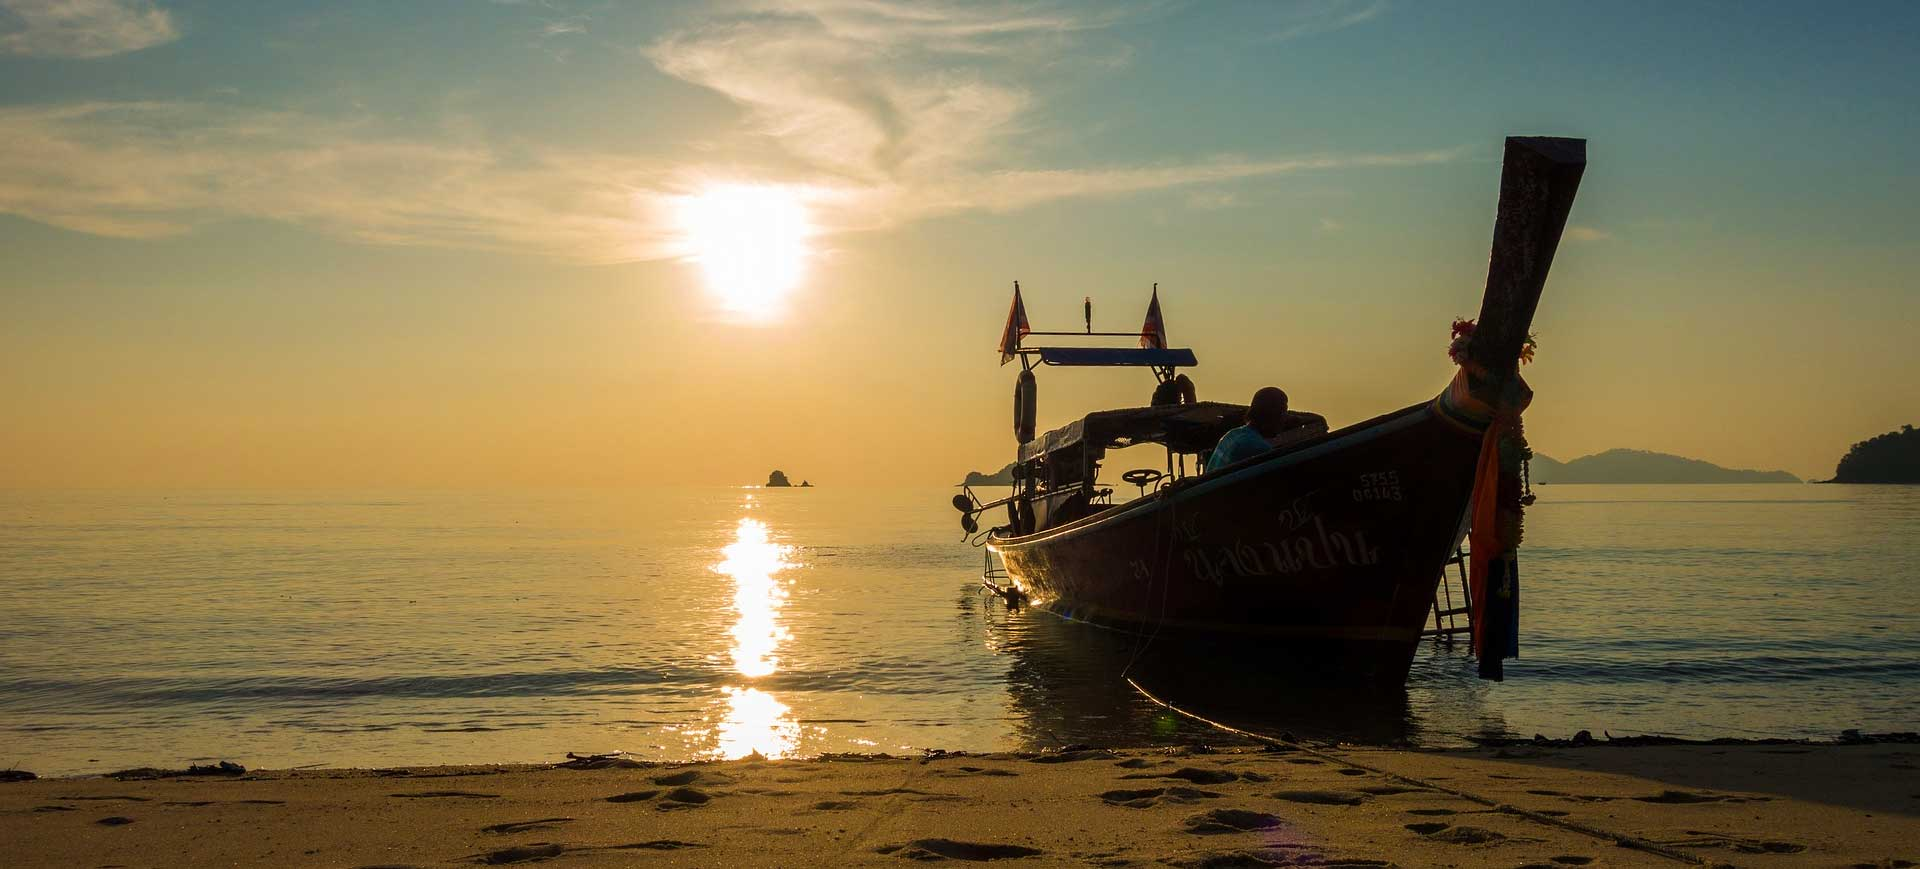 thailand-backpacker-blog-infos-boot-meer